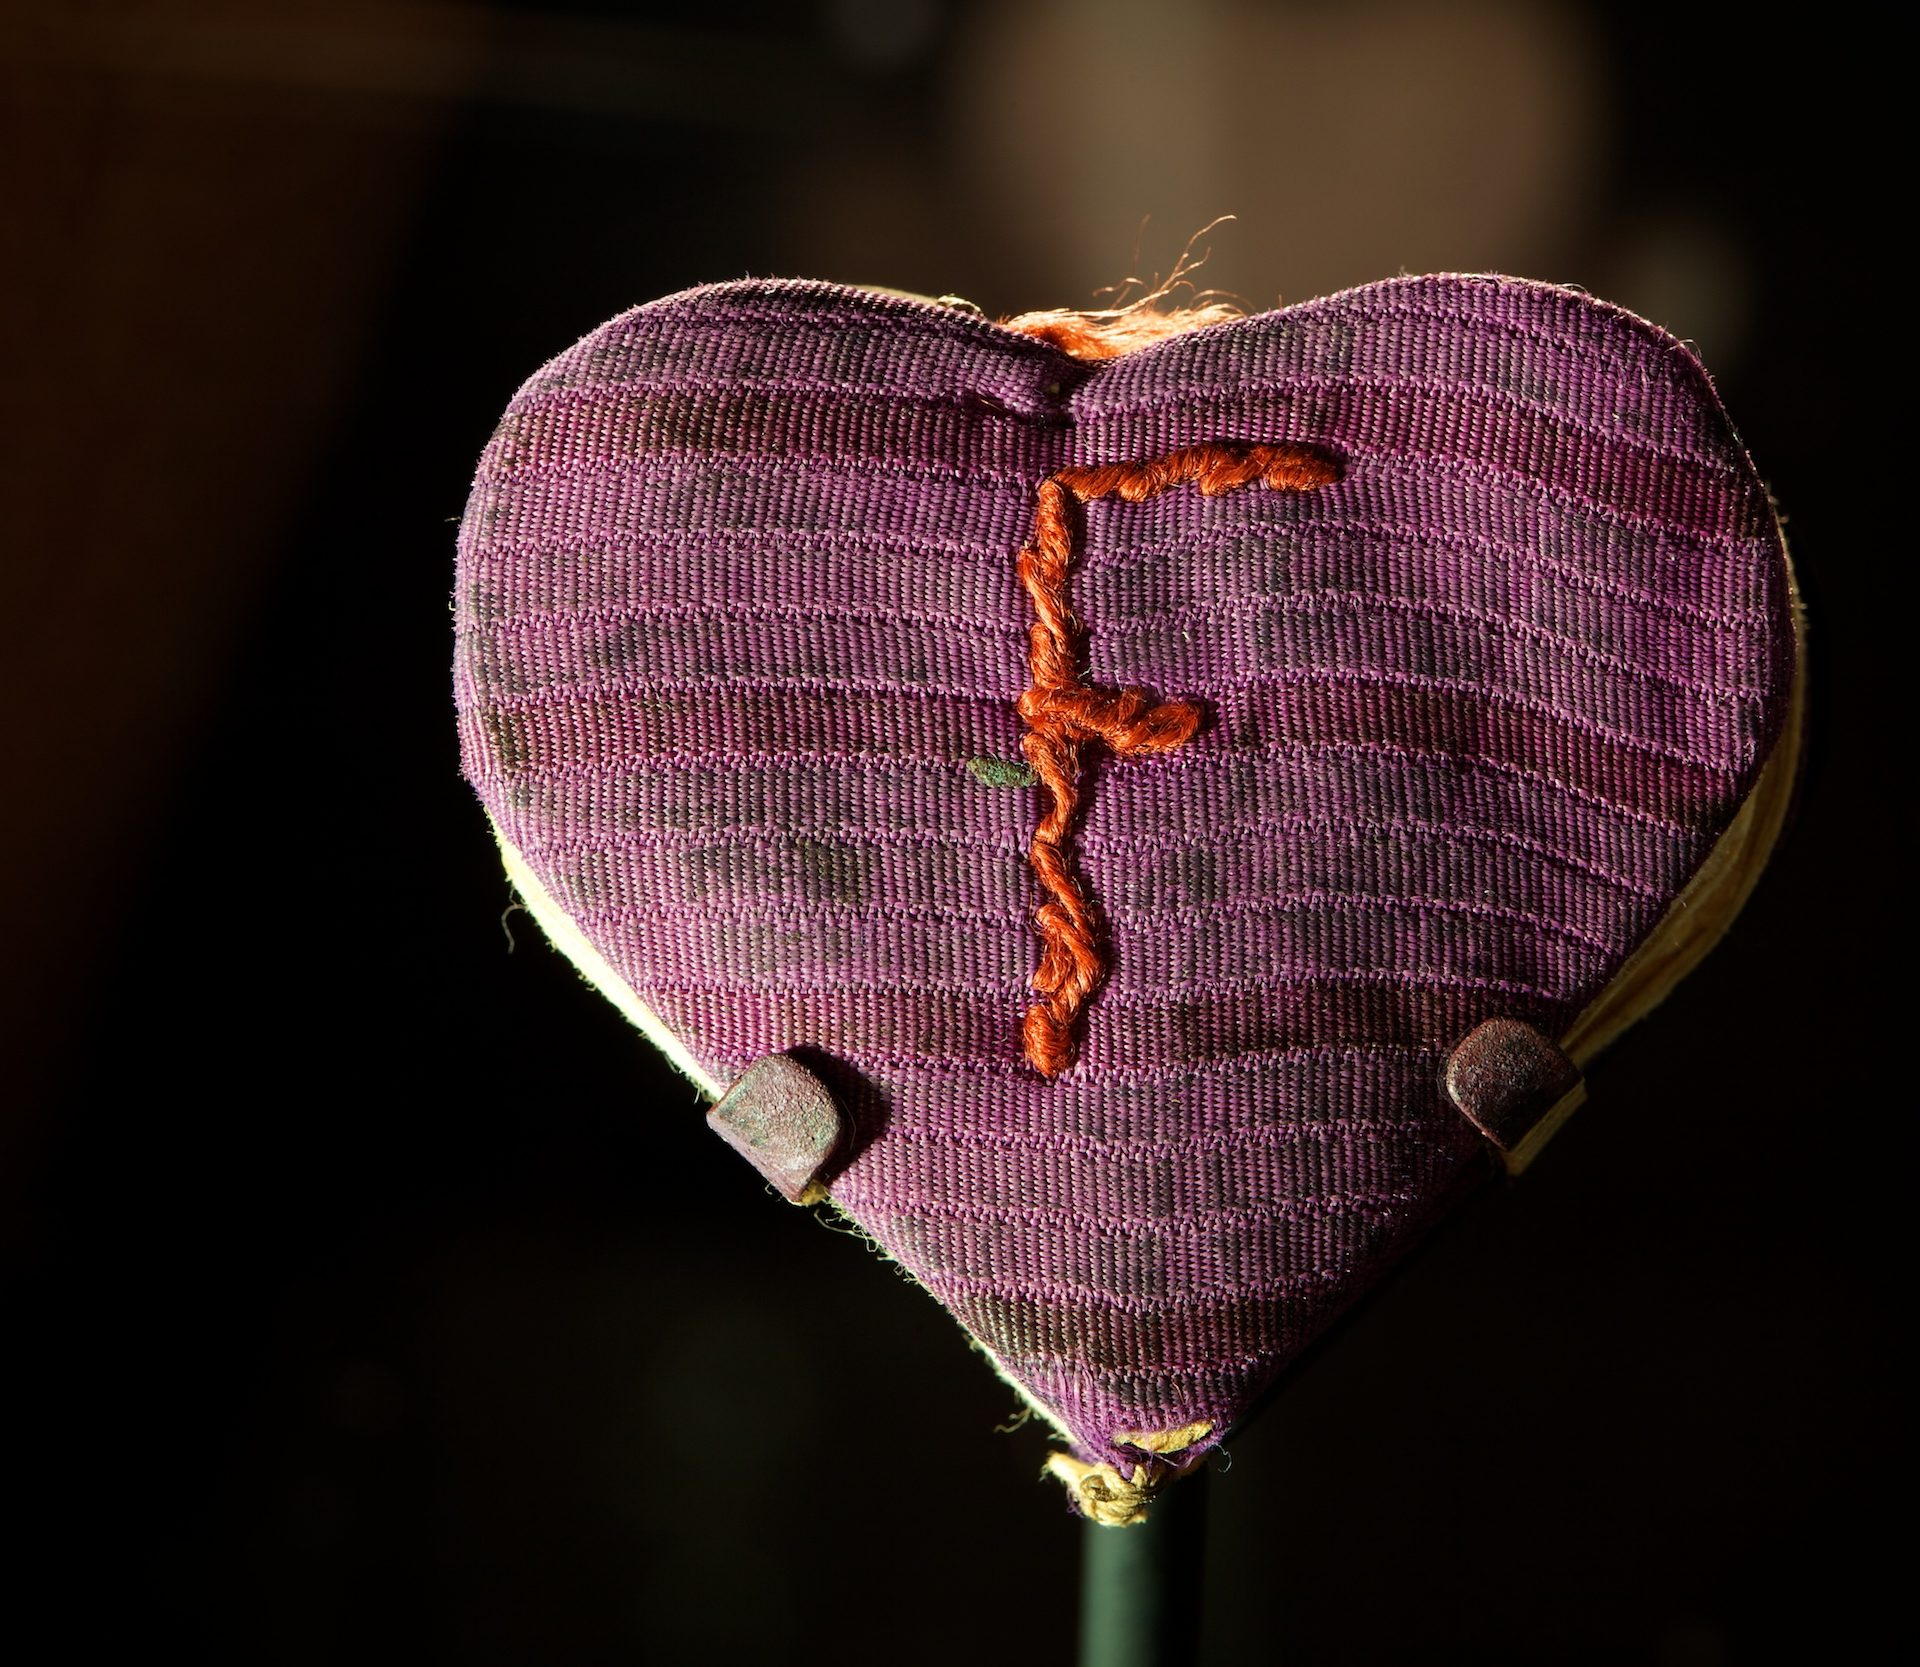 This heart-shaped booklet is a birthday card given to Fania Fainer on December 12, 1944, when she turned 20-years-old in Auschwitz. Photo: Vadim Daniel